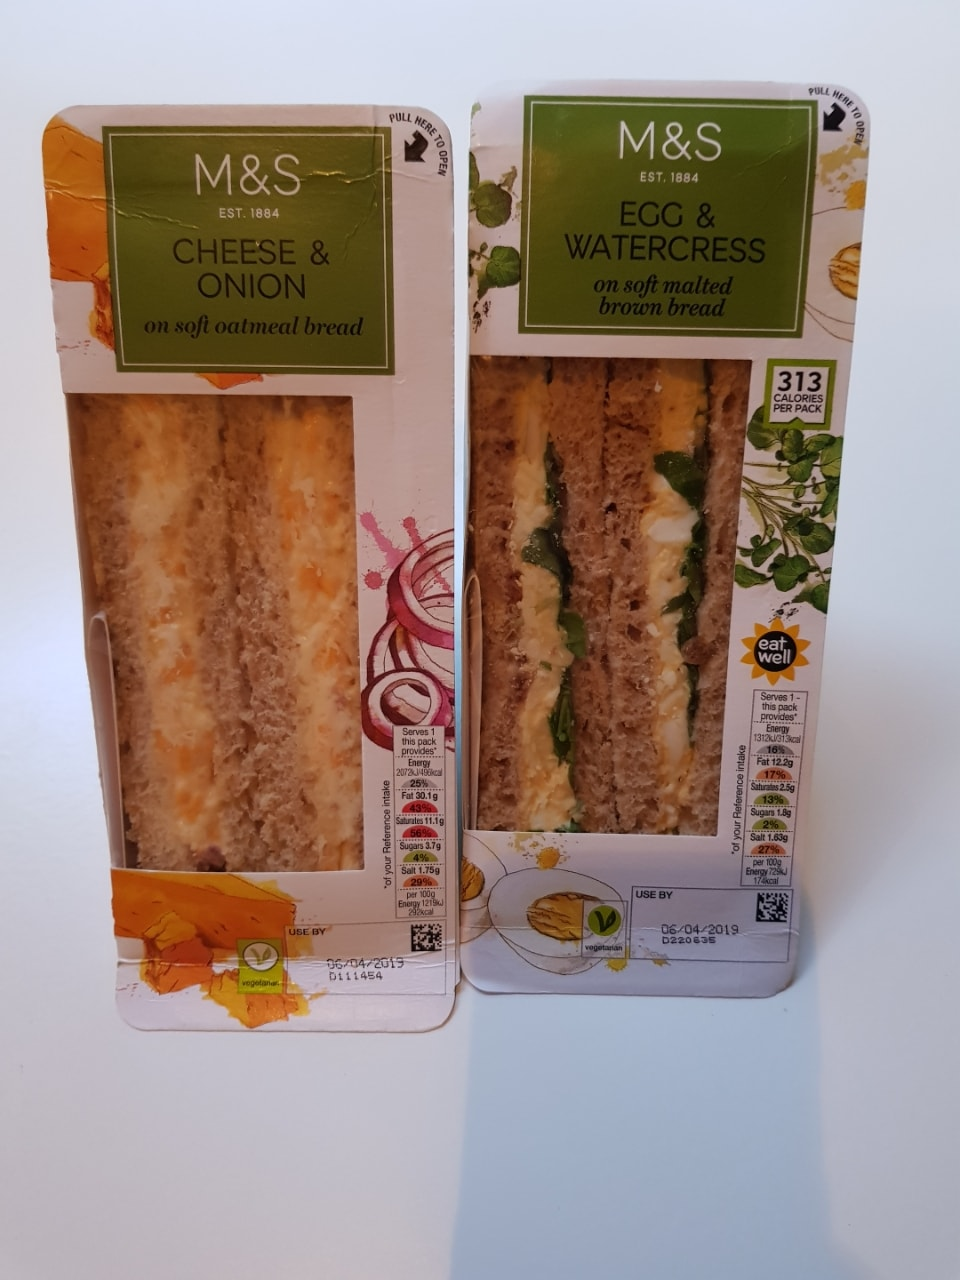 Egg and cress and cheese and onion sandwich